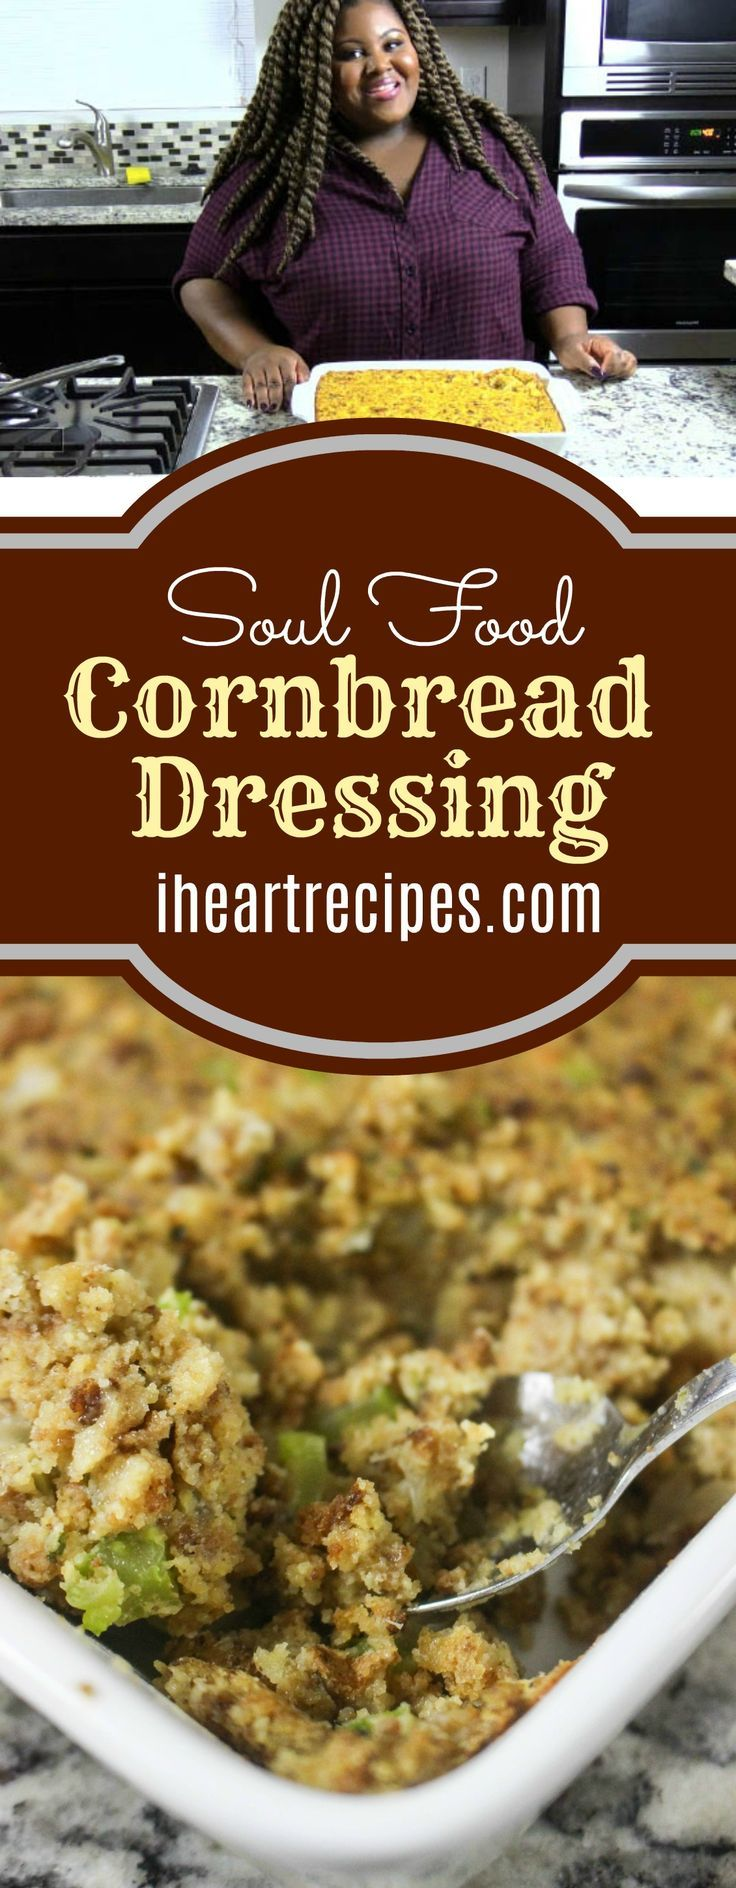 Southern Style Cornbread Dressing | I Heart Recipes #cornbreaddressing